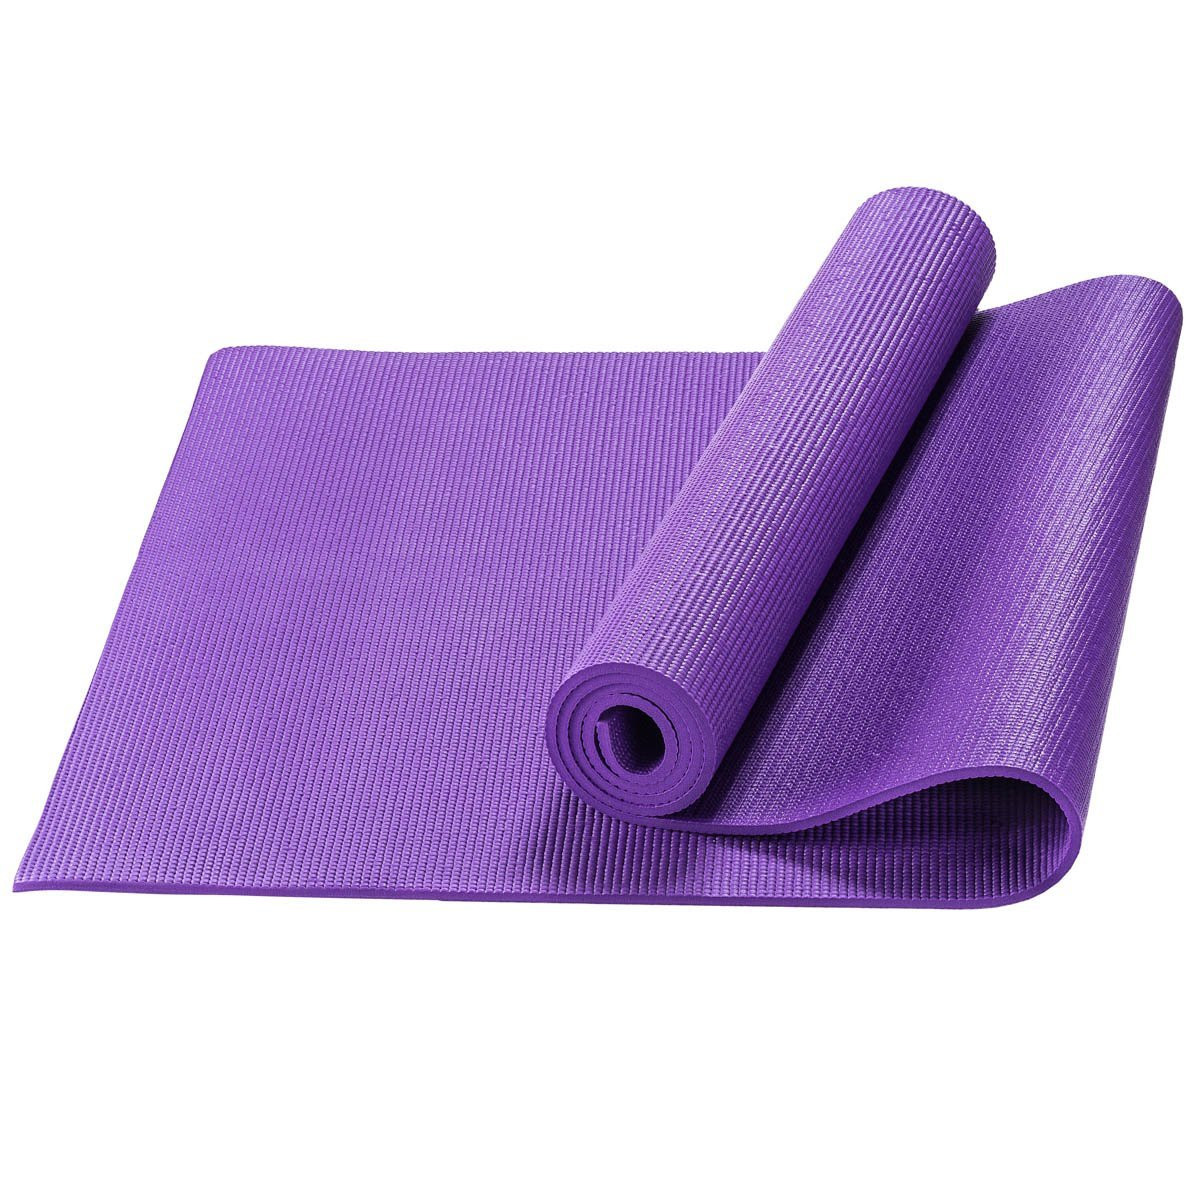 Sivan Health And Fitness Yoga Mat For Exercise Yoga And Pilates Sivanhealthandfitness Com